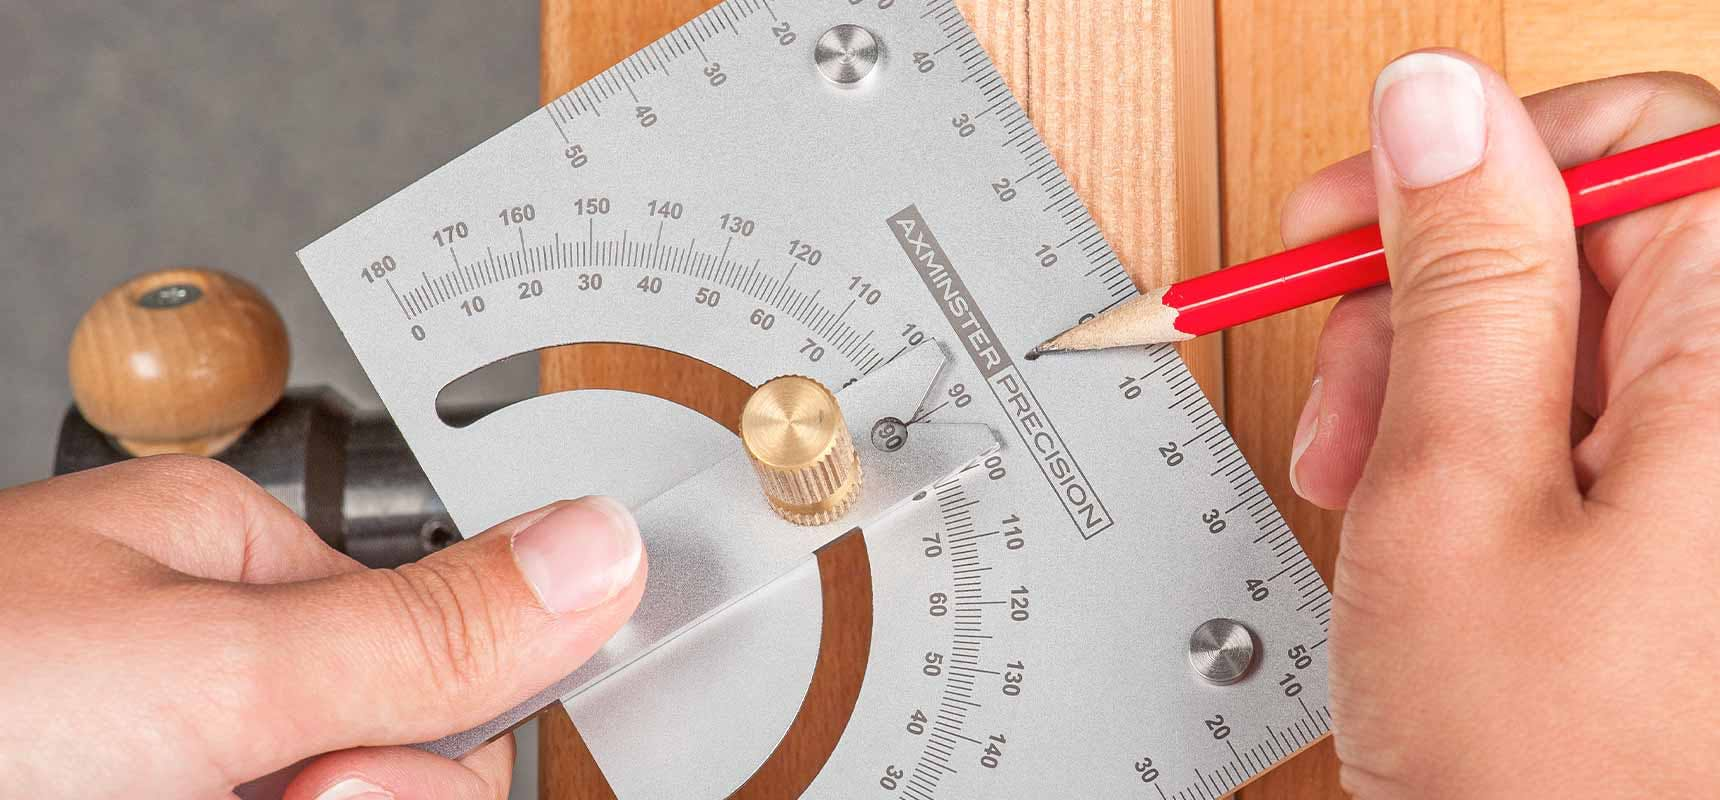 Measure just once